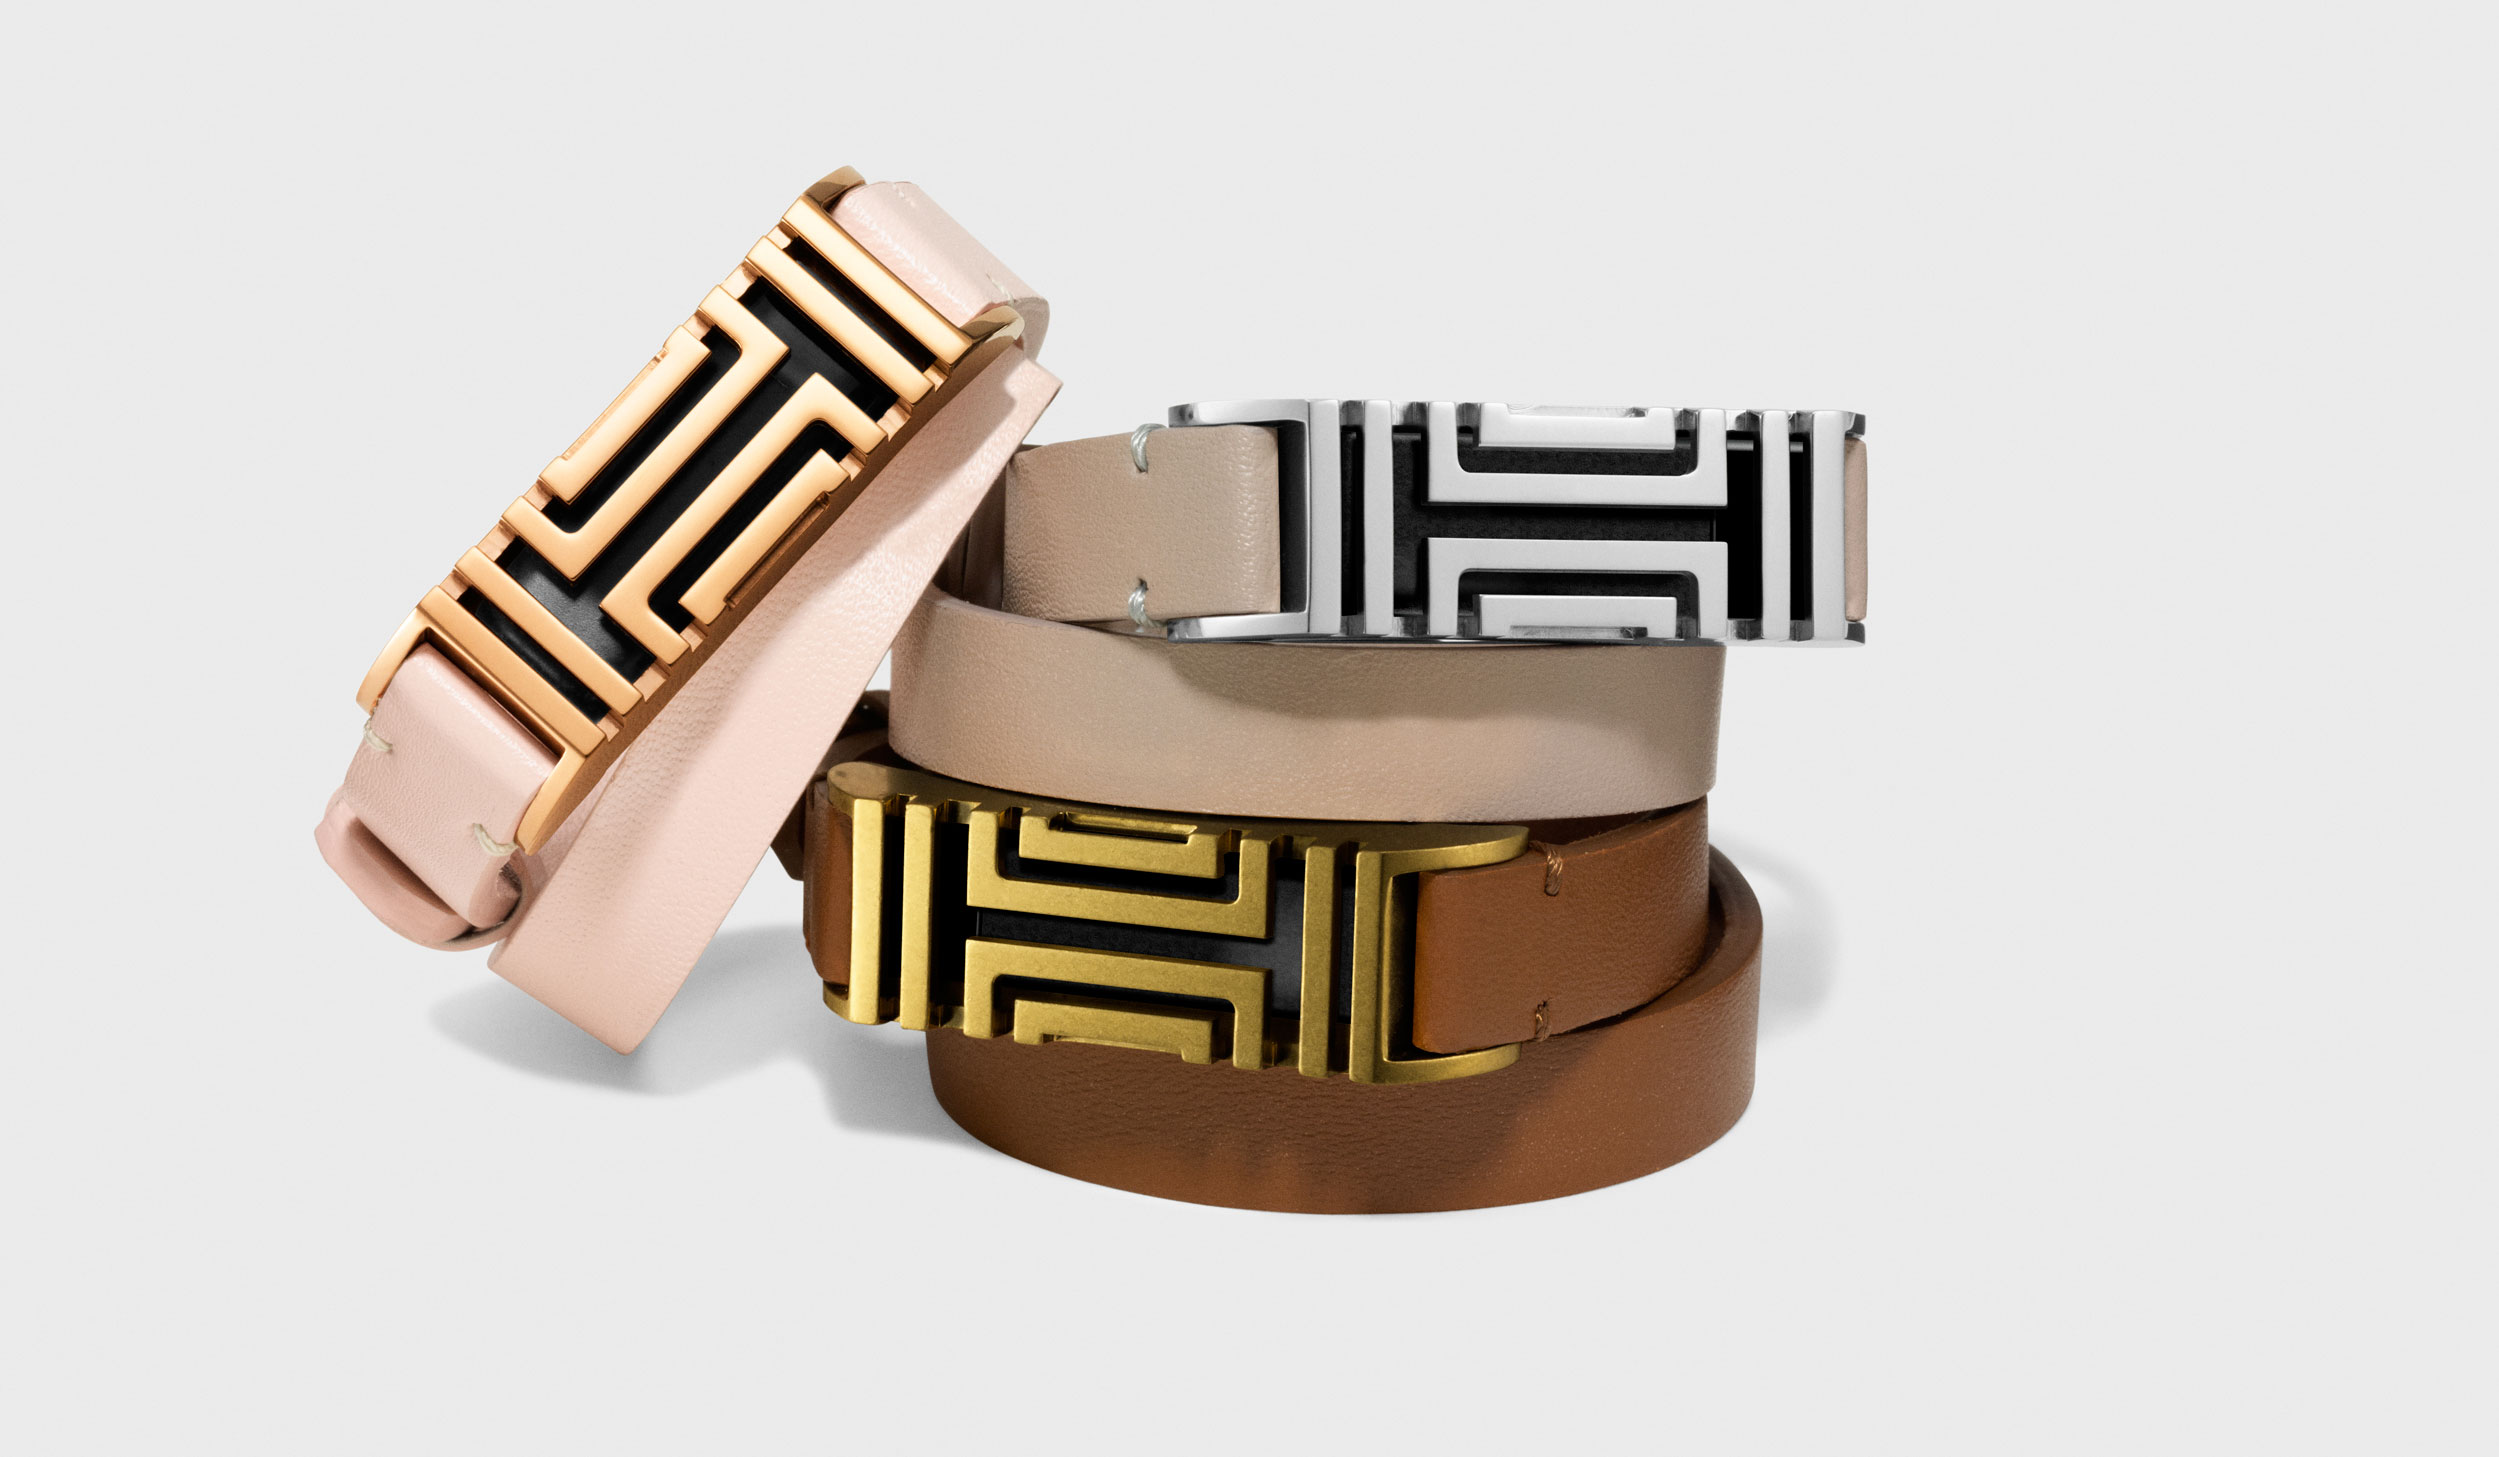 Tory-Burch-Fit-Bit-Mothers-Day-gift-ideas-Cococozy